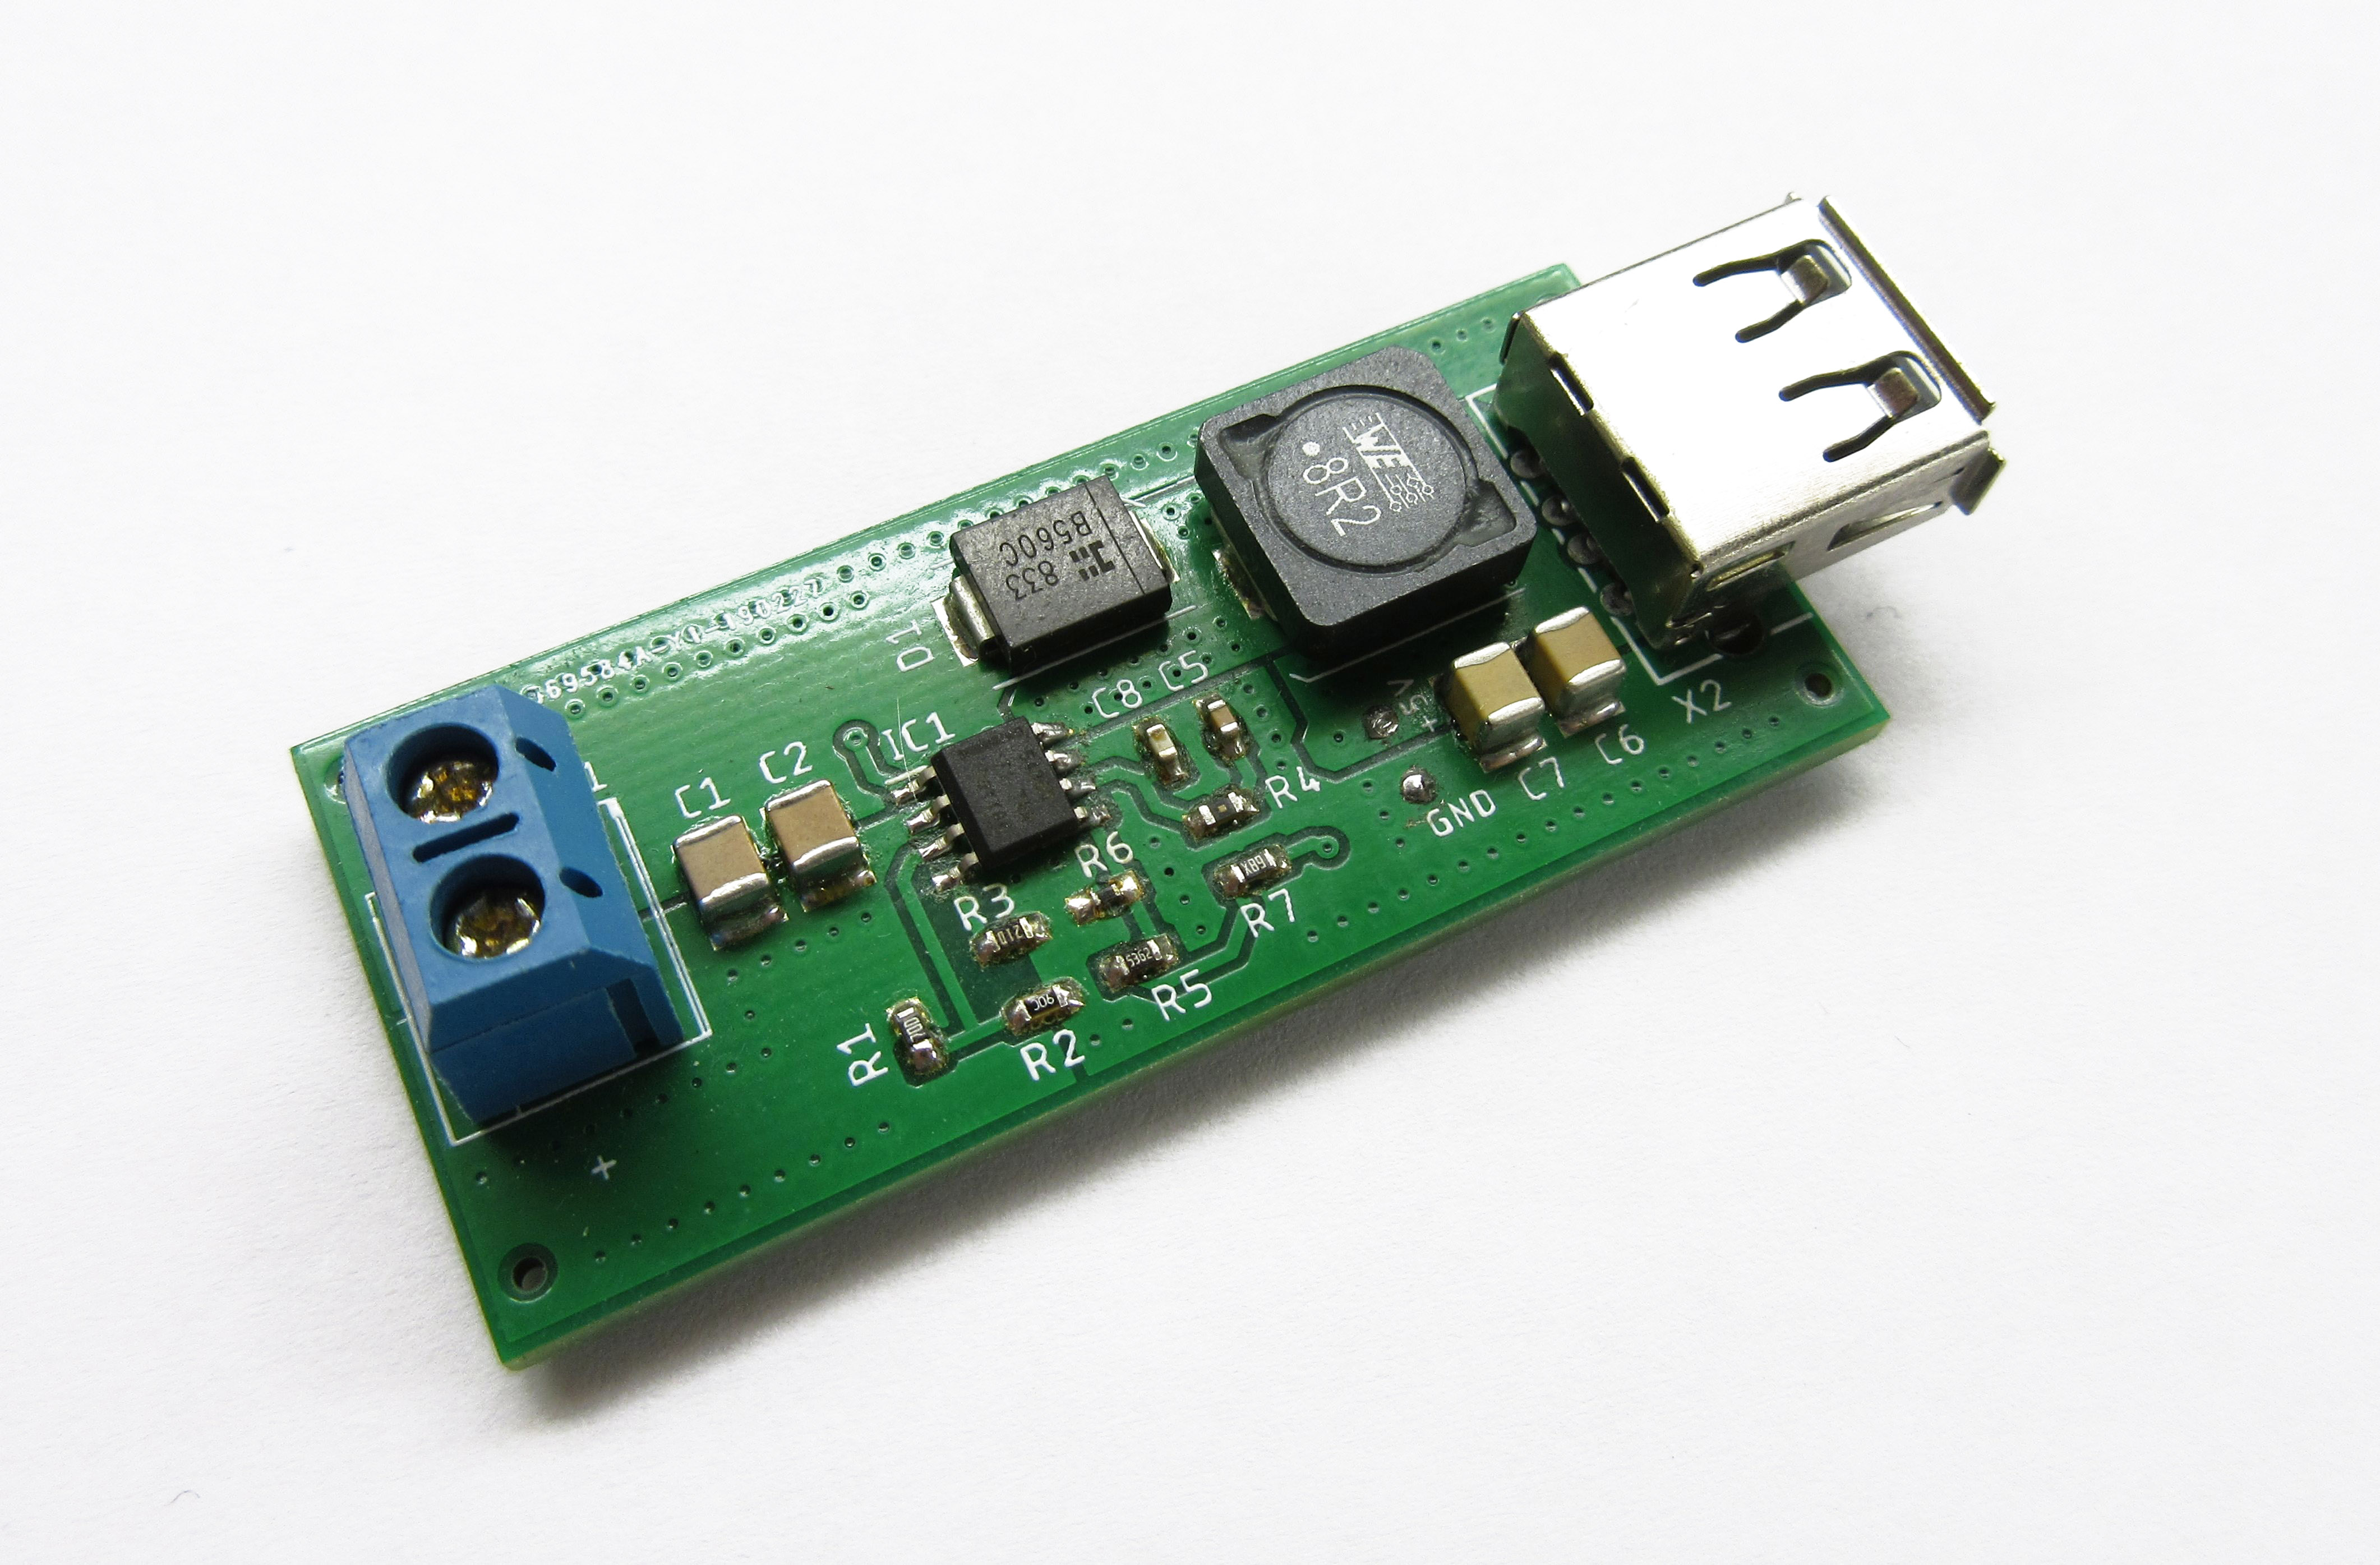 60V to 5V @ 3.5A Buck converter with USB output